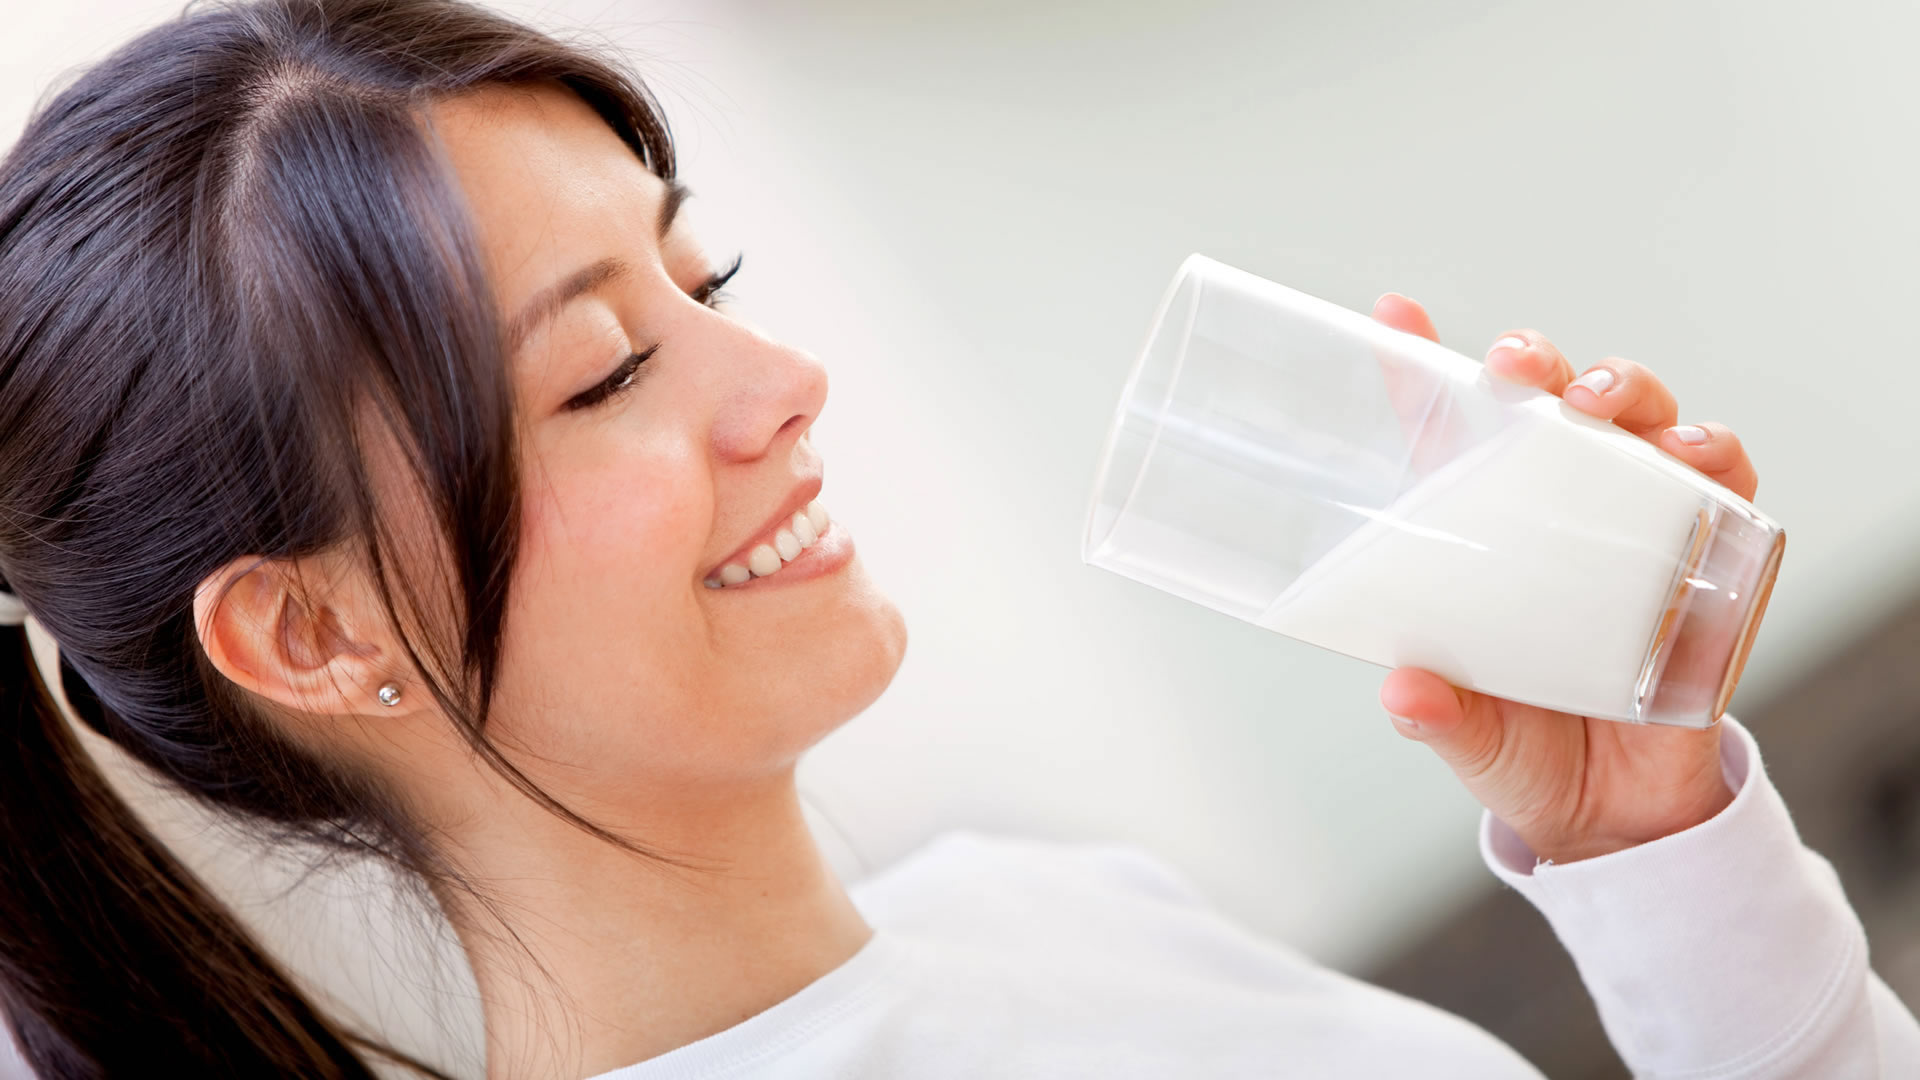 Top 10 Health Benefits of Drinking Milk Daily